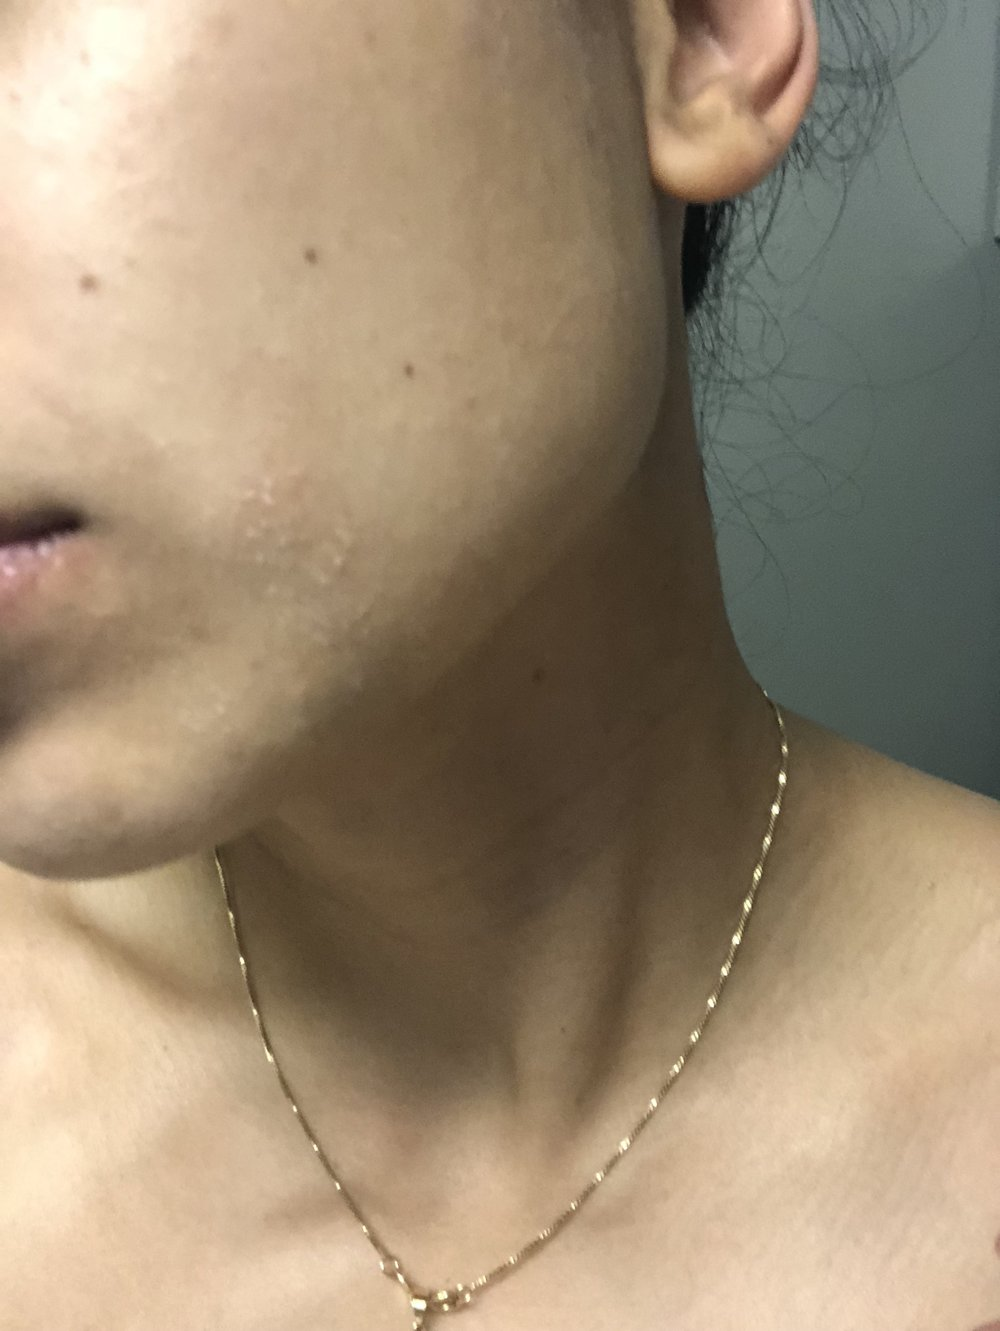 Eczema on the face